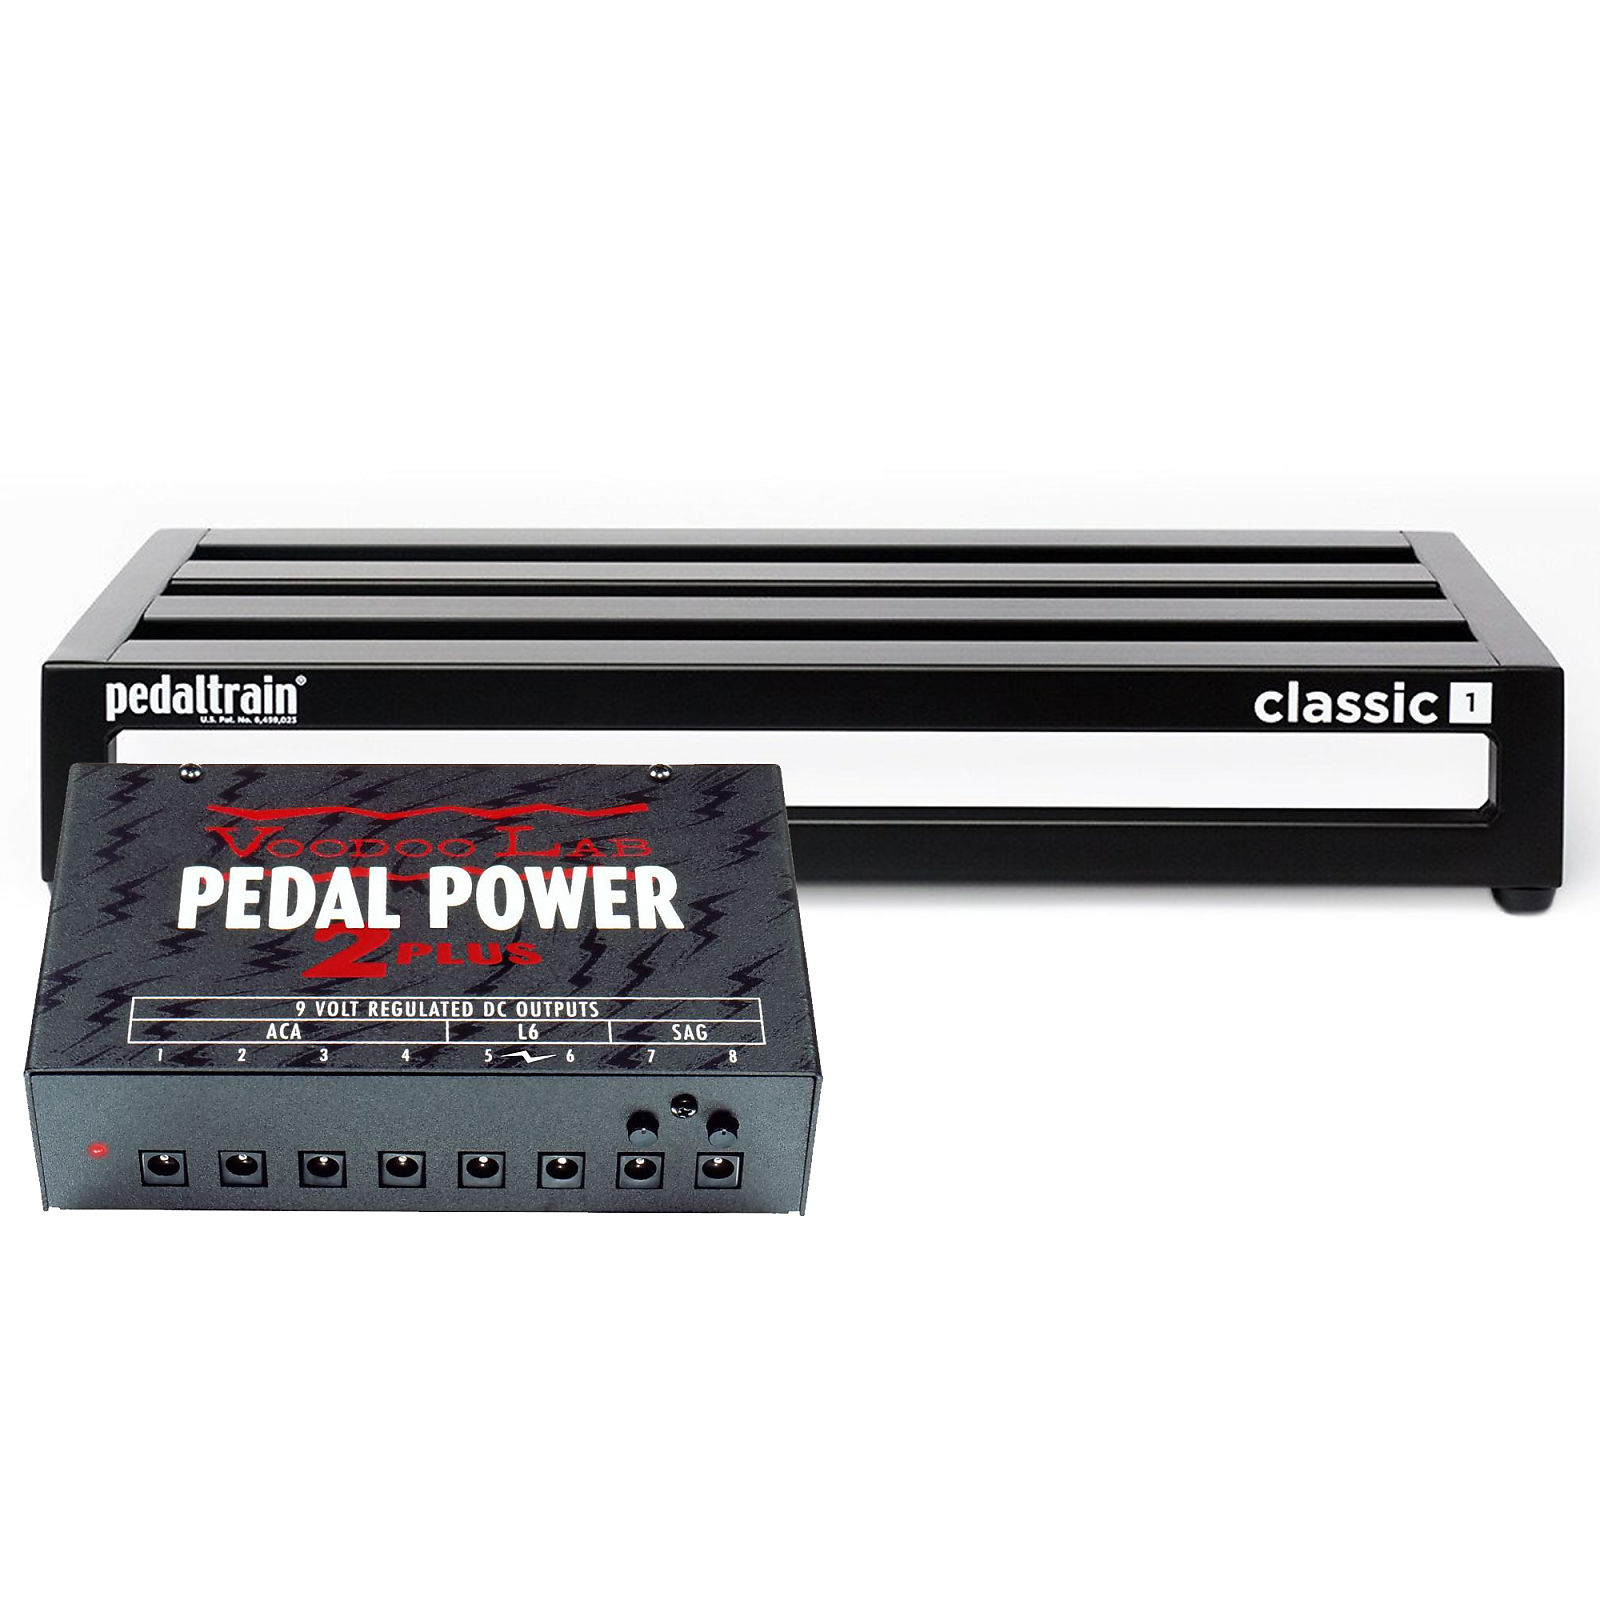 Pedaltrain Classic 1 Pedalboard w/Tour Case Bundle w/ Voodoo Lab Pedal  Power 2 PLUS Power Supply